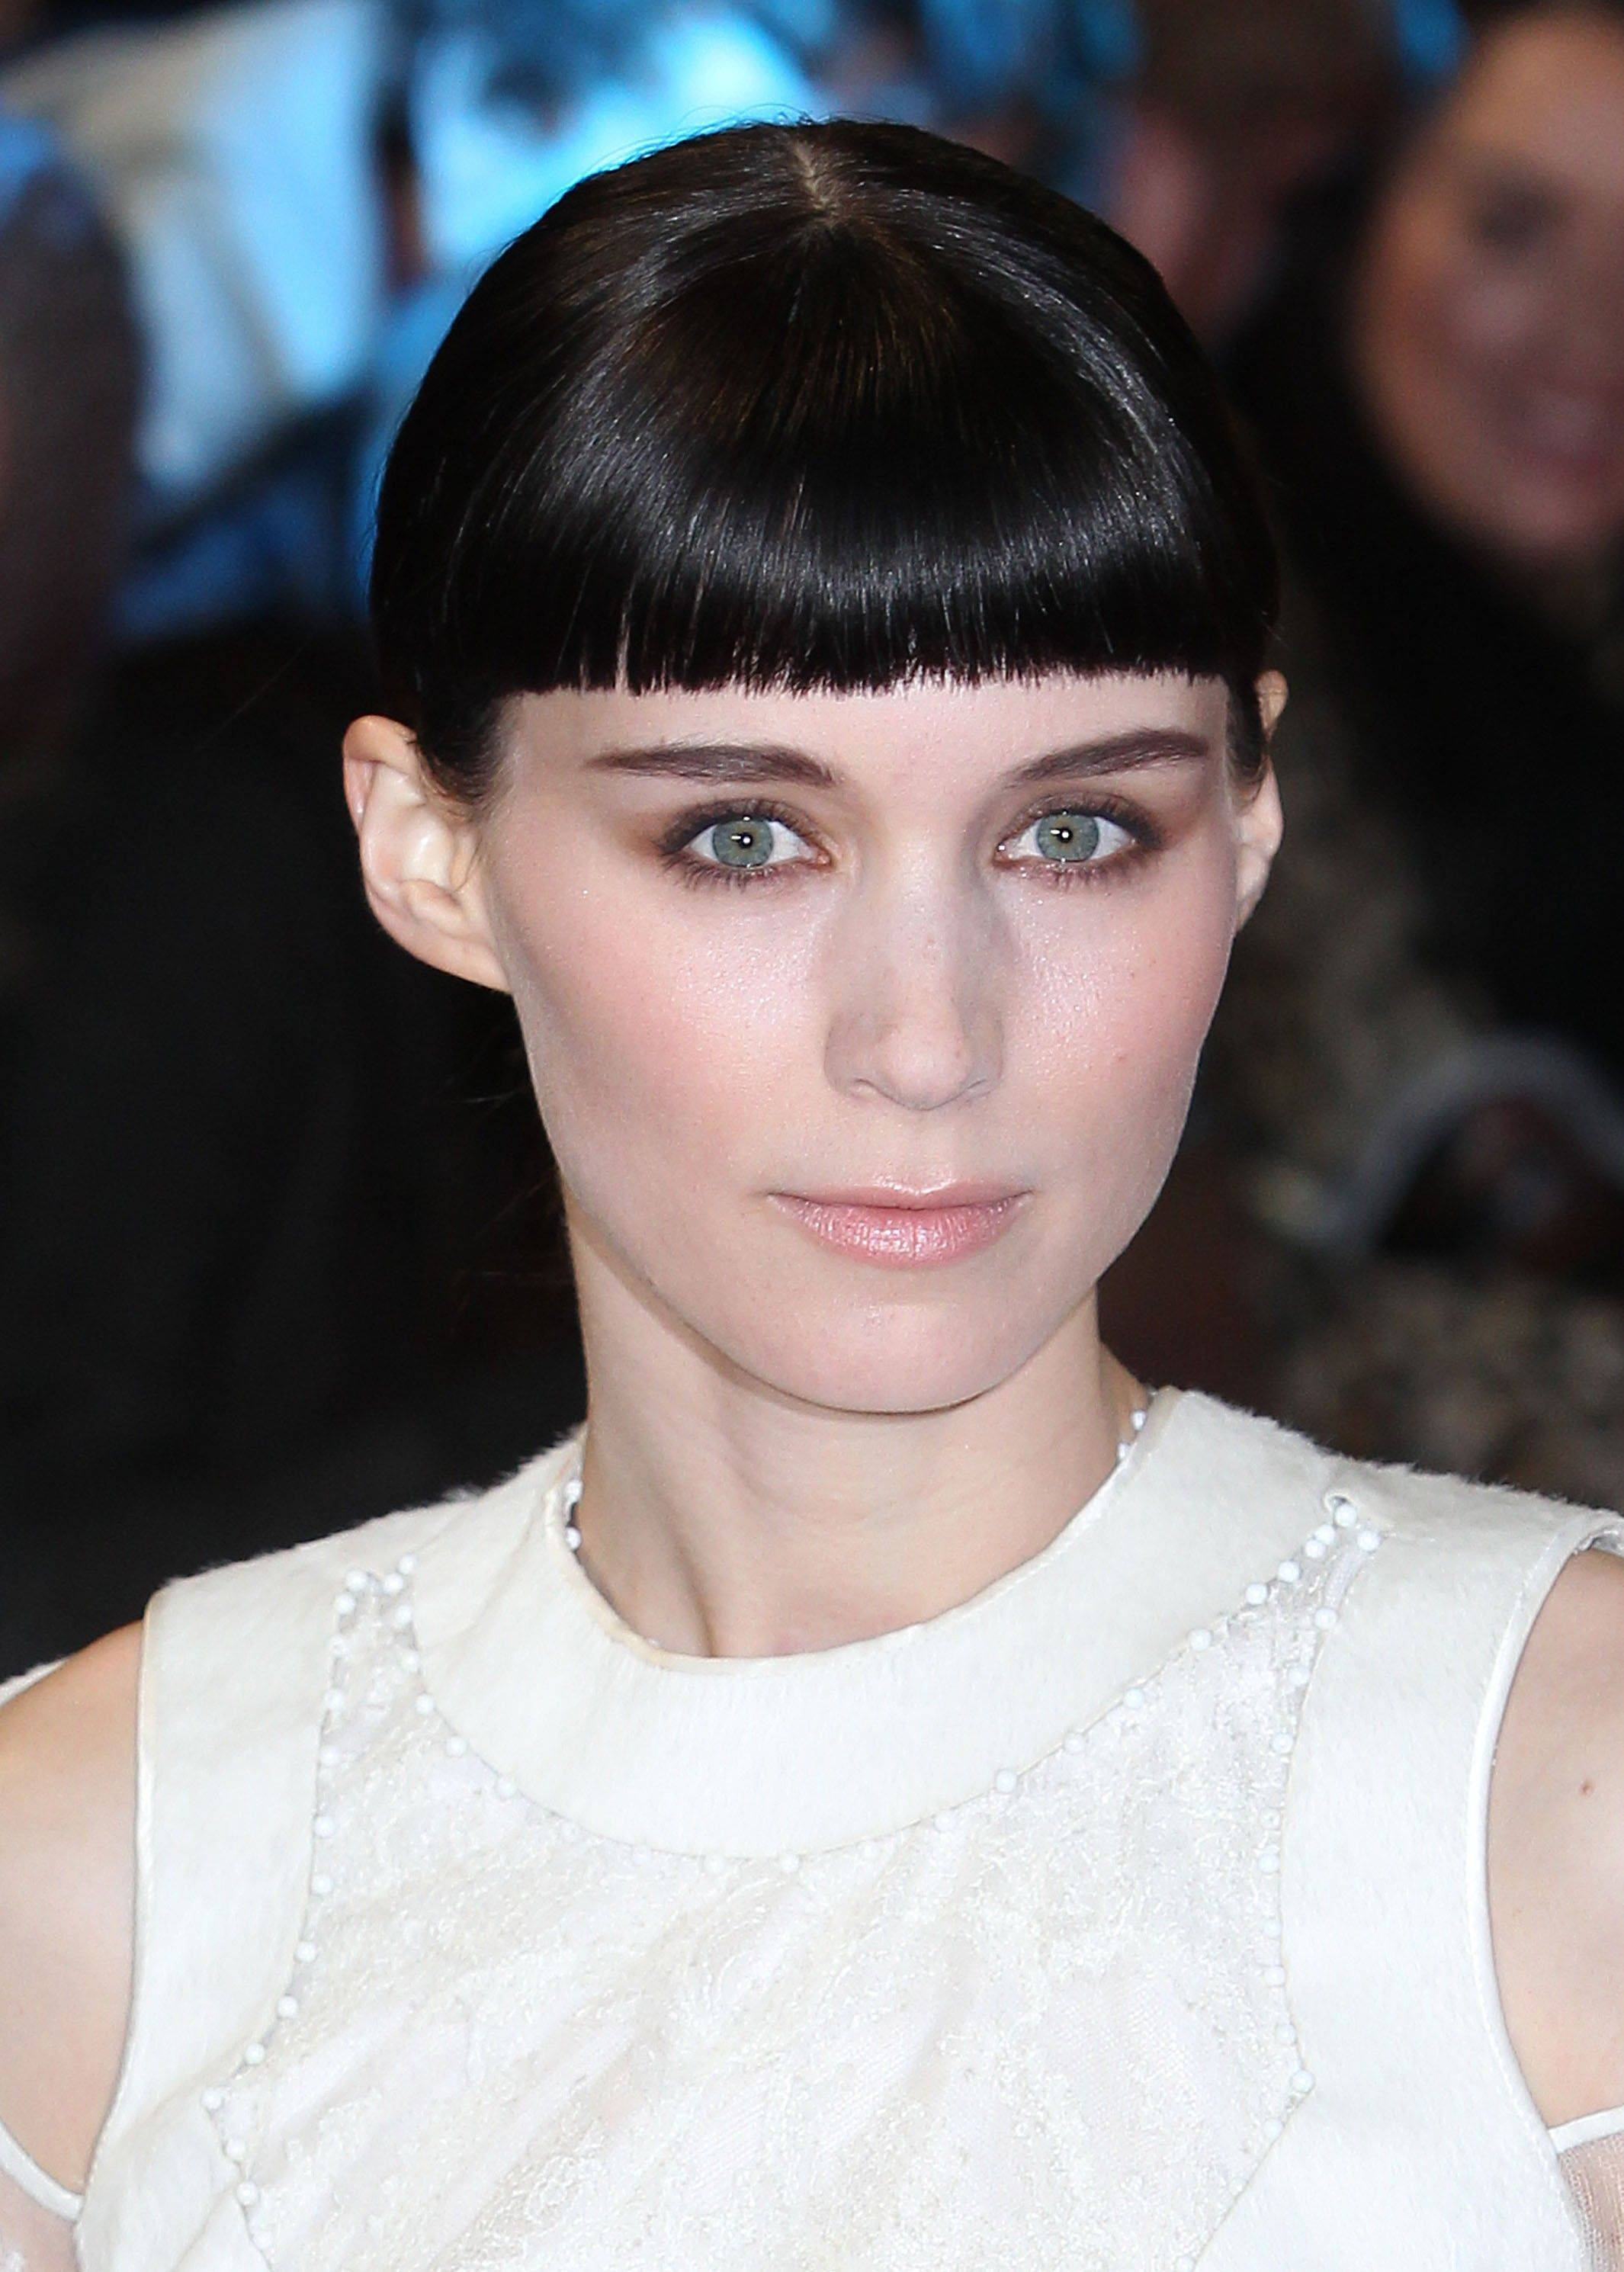 "In this Dec. 12, 2011 file photo, actress Rooney Mara, who plays Lisbeth Salander, arrives for the World Premiere of ""The Girl With The Dragon Tattoo,"" in London. Mara was nominated Tuesday, Jan. 24, 2012 for an Academy Award for best actress for her role in the film."